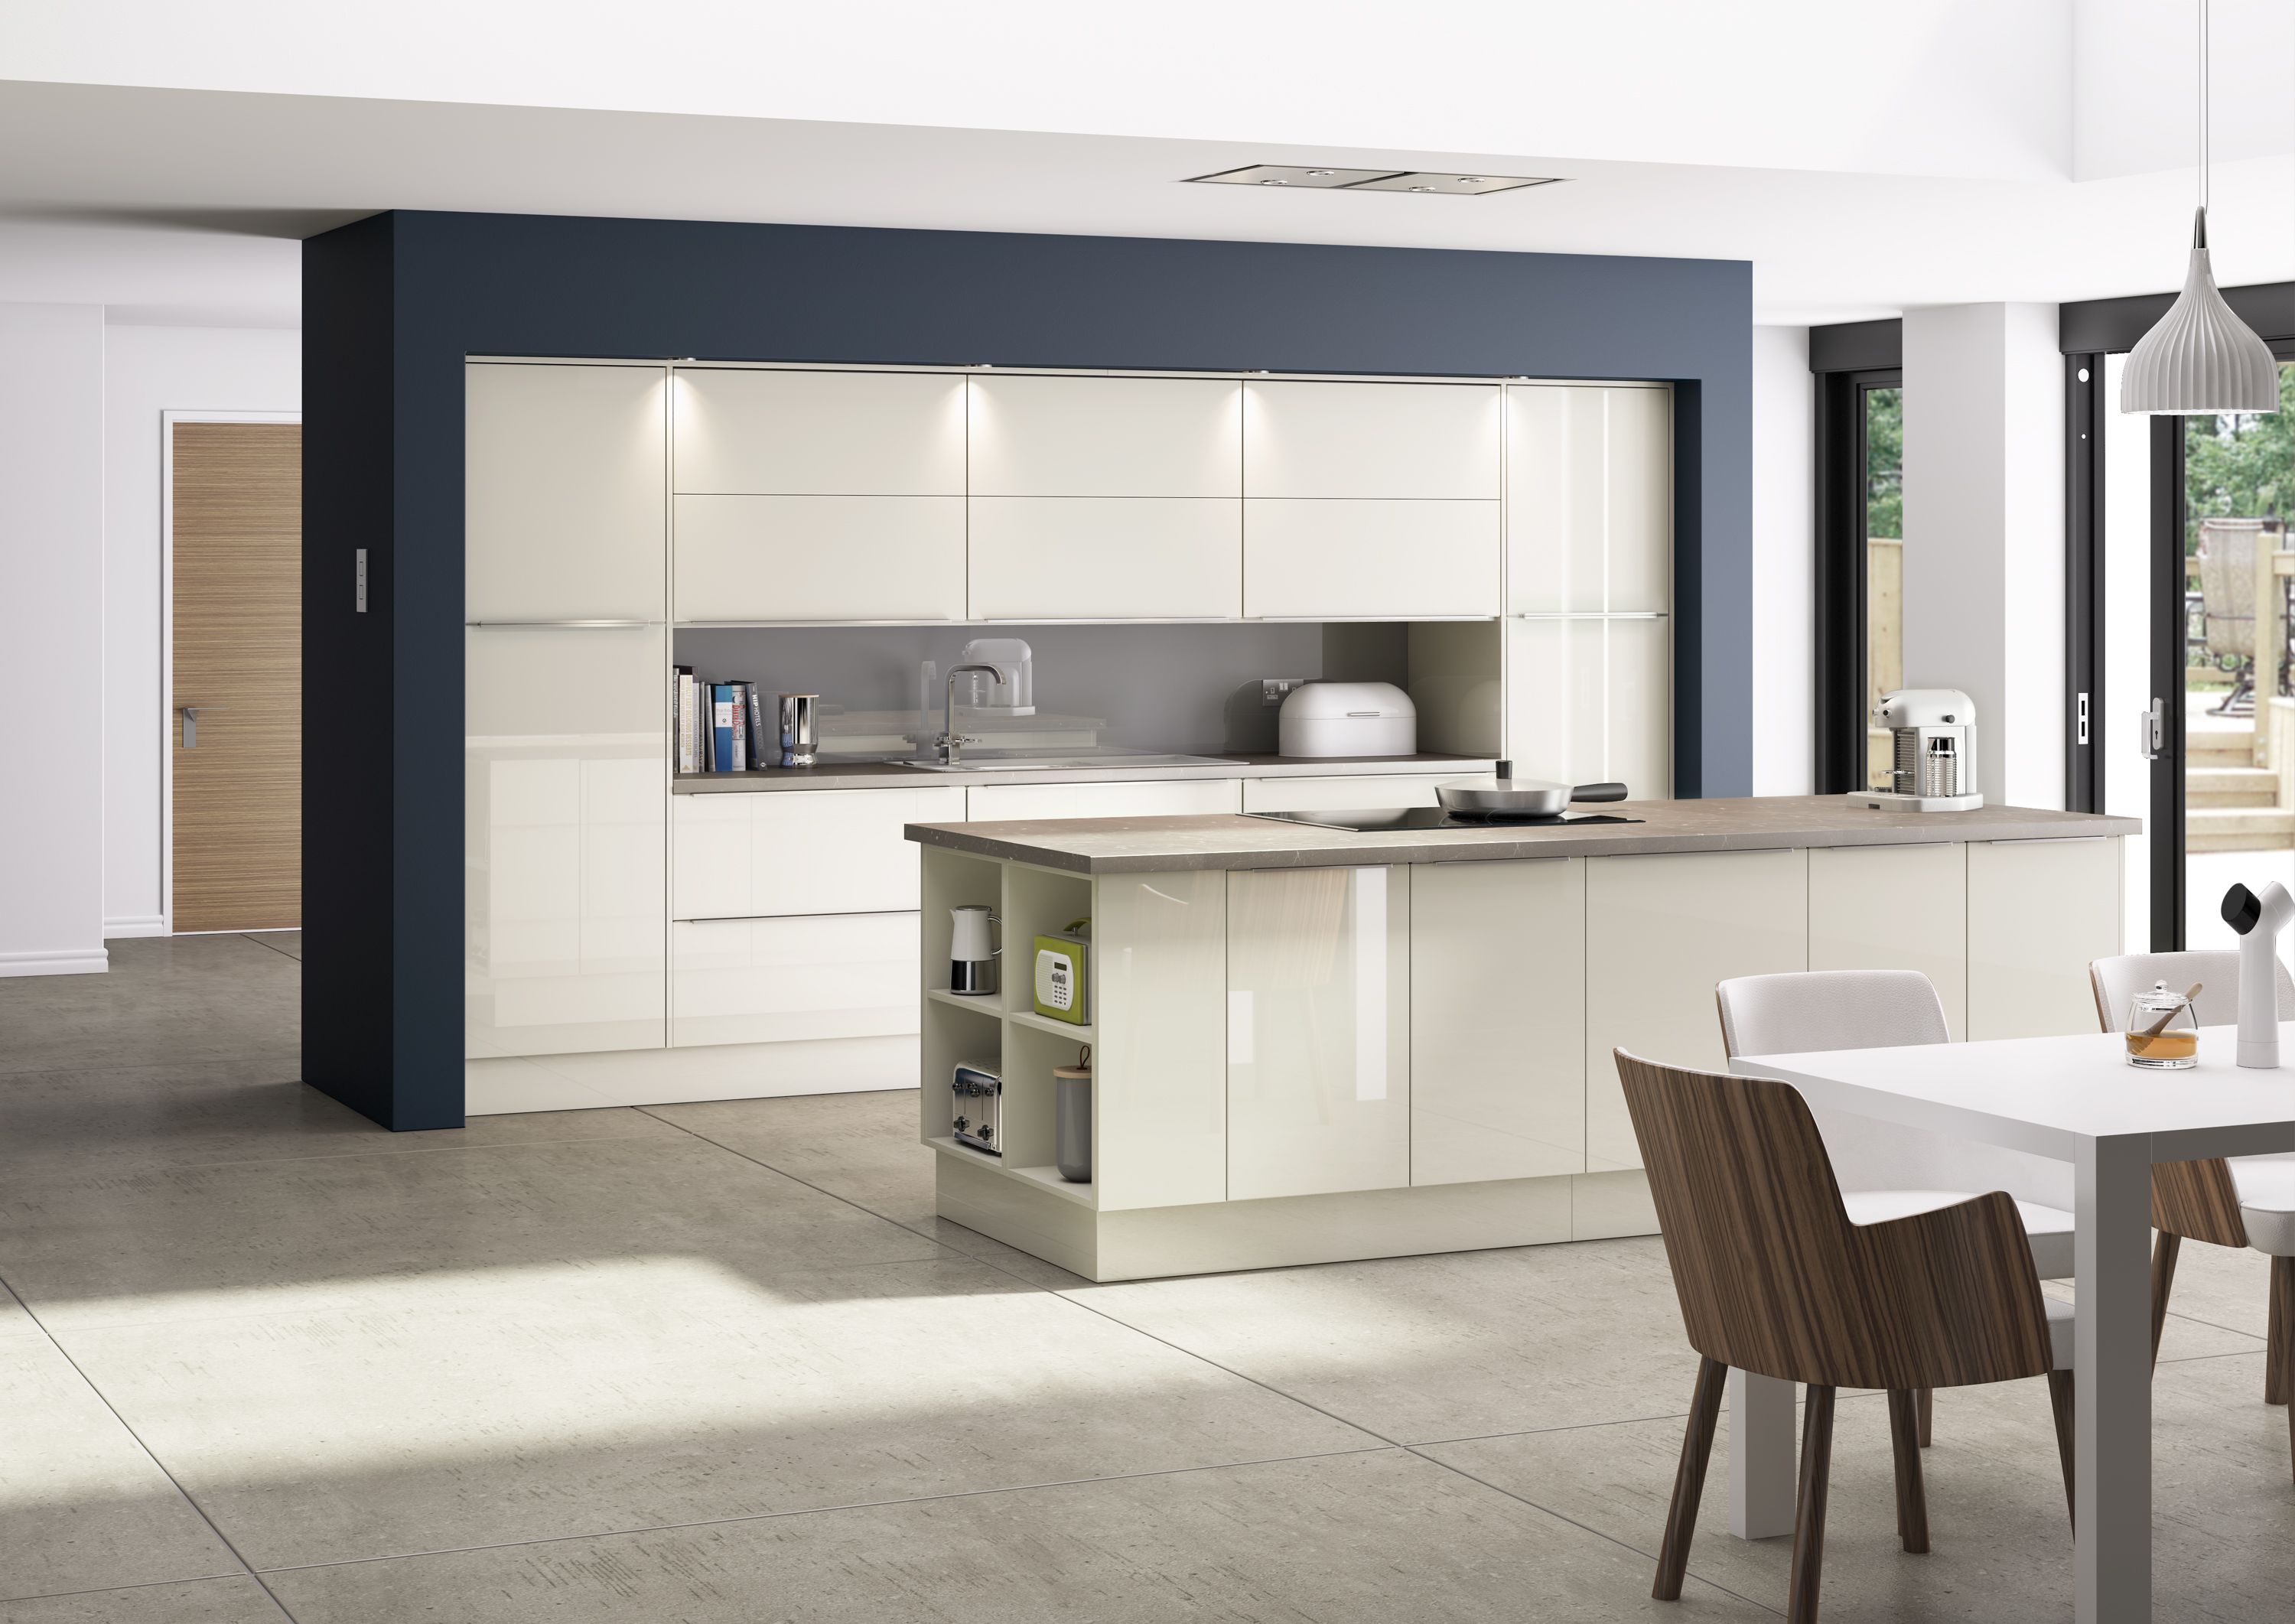 Inline Gloss Ice Ivory | Taylor Wimpey Options Choices | Pinterest ...